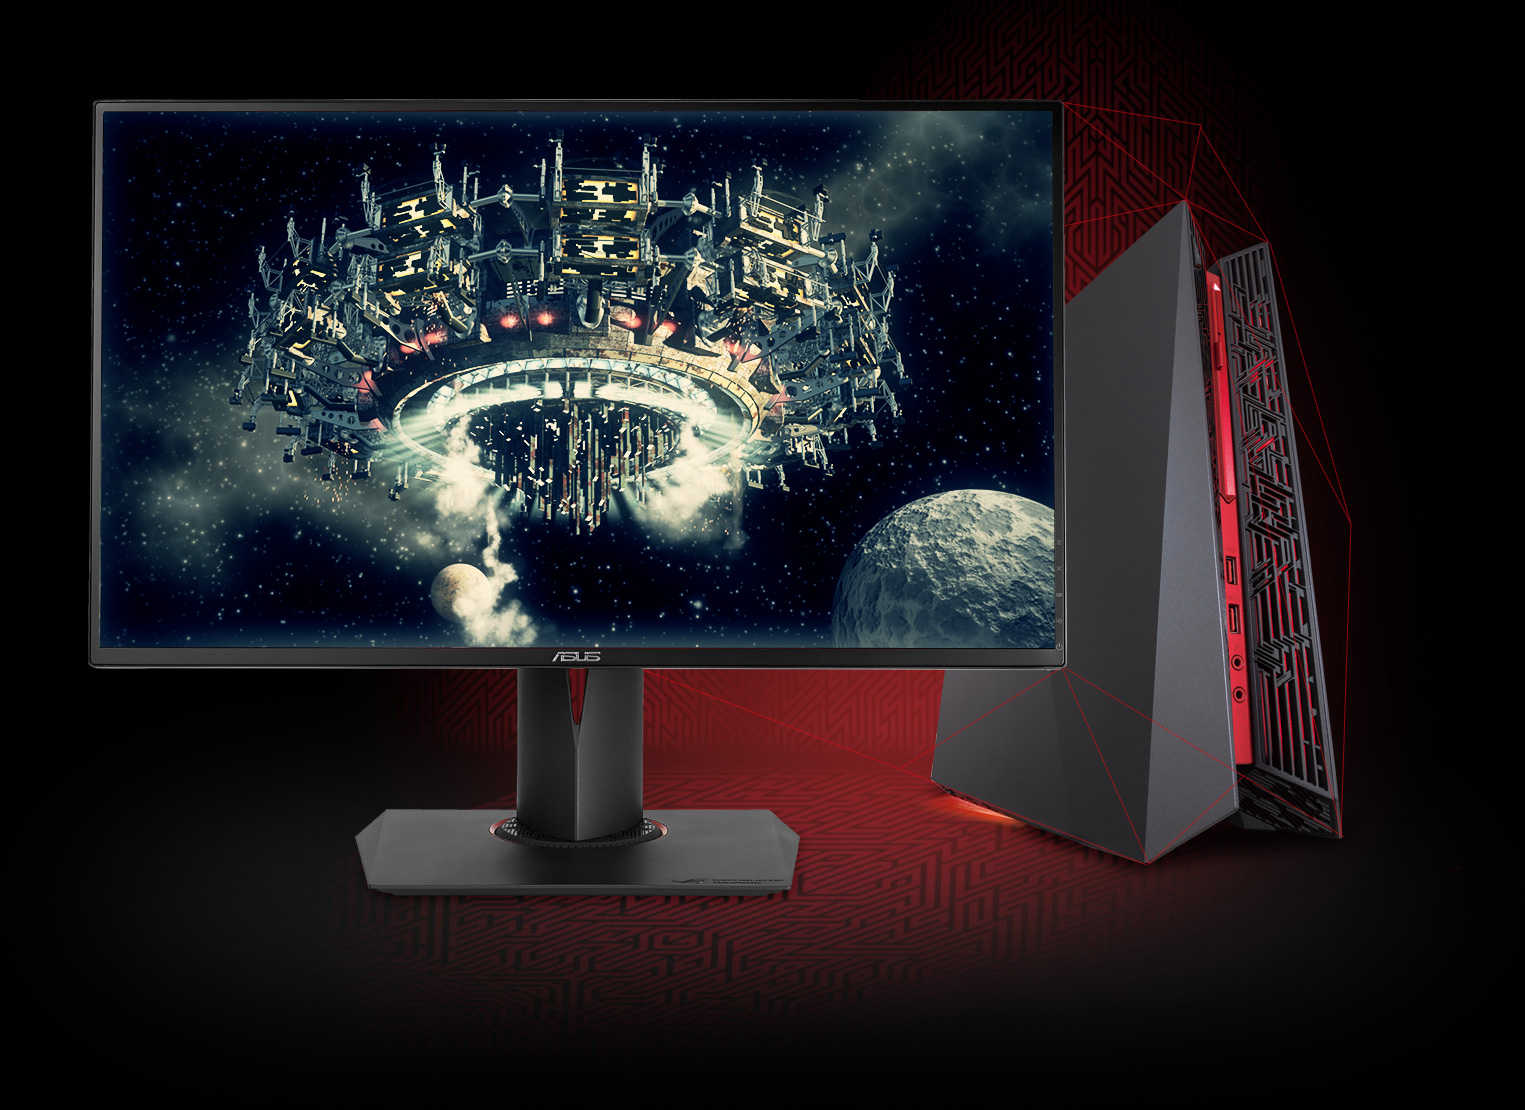 Stereoscopic 3d Gaming Computer: ROG - Republic Of Gamers